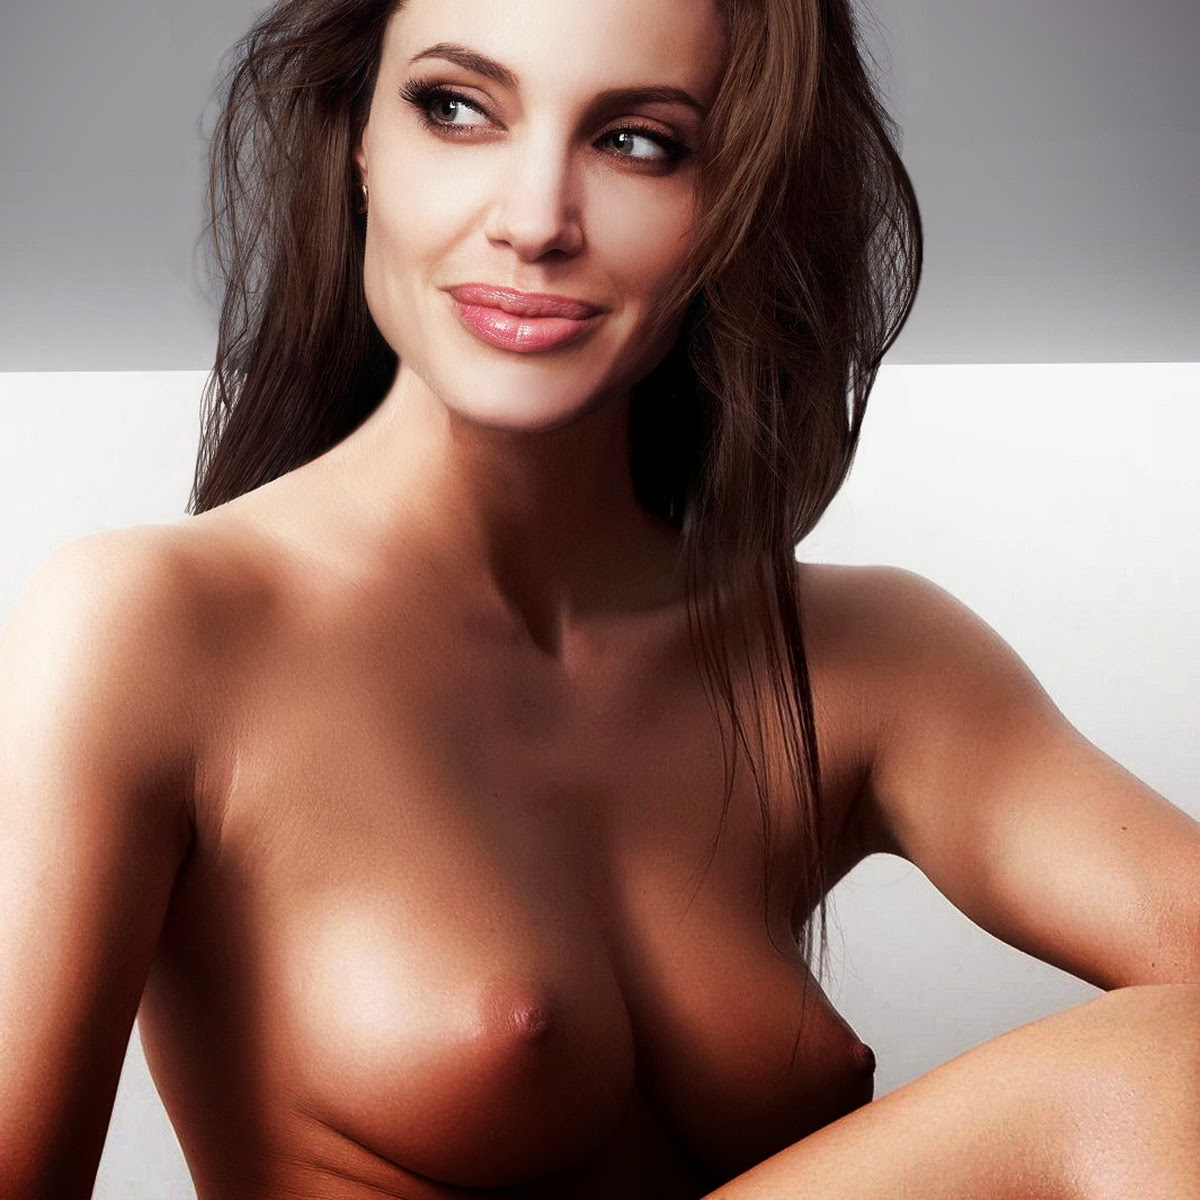 Opinion Angelin a jolie nude think, that